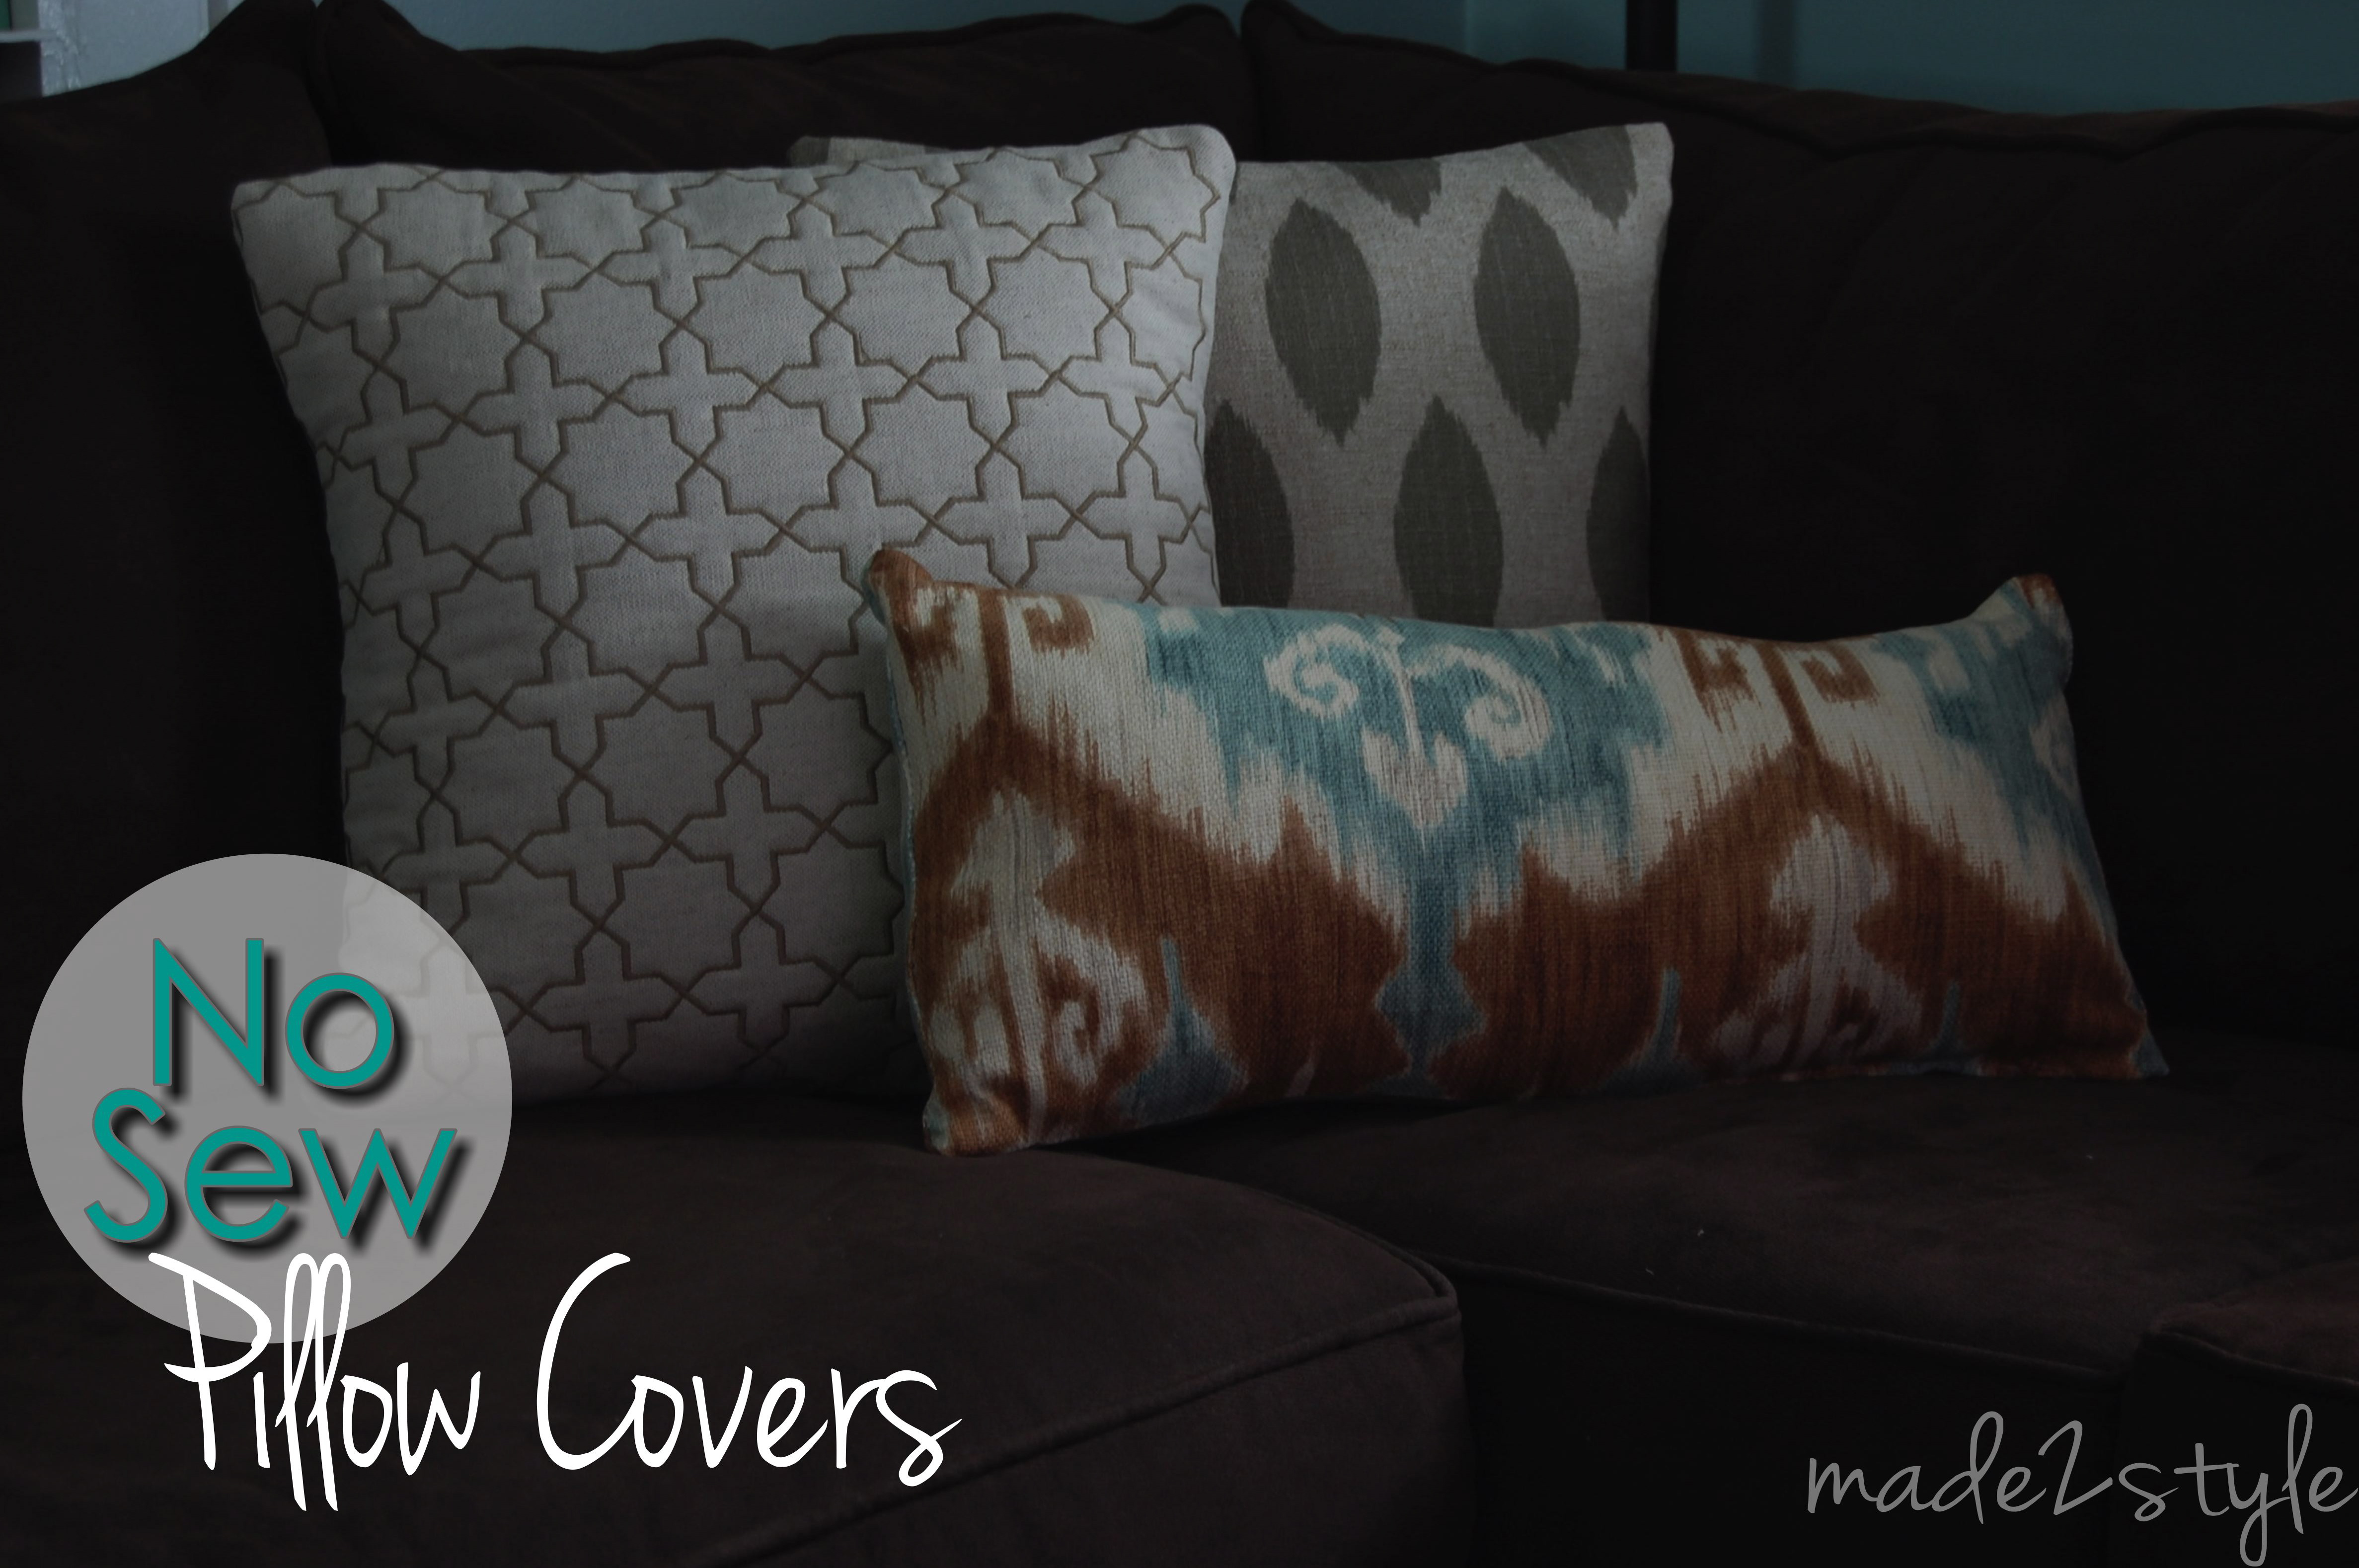 No Sew Decorative Pillow Covers : No Sew Pillow Covers ? Made2Style